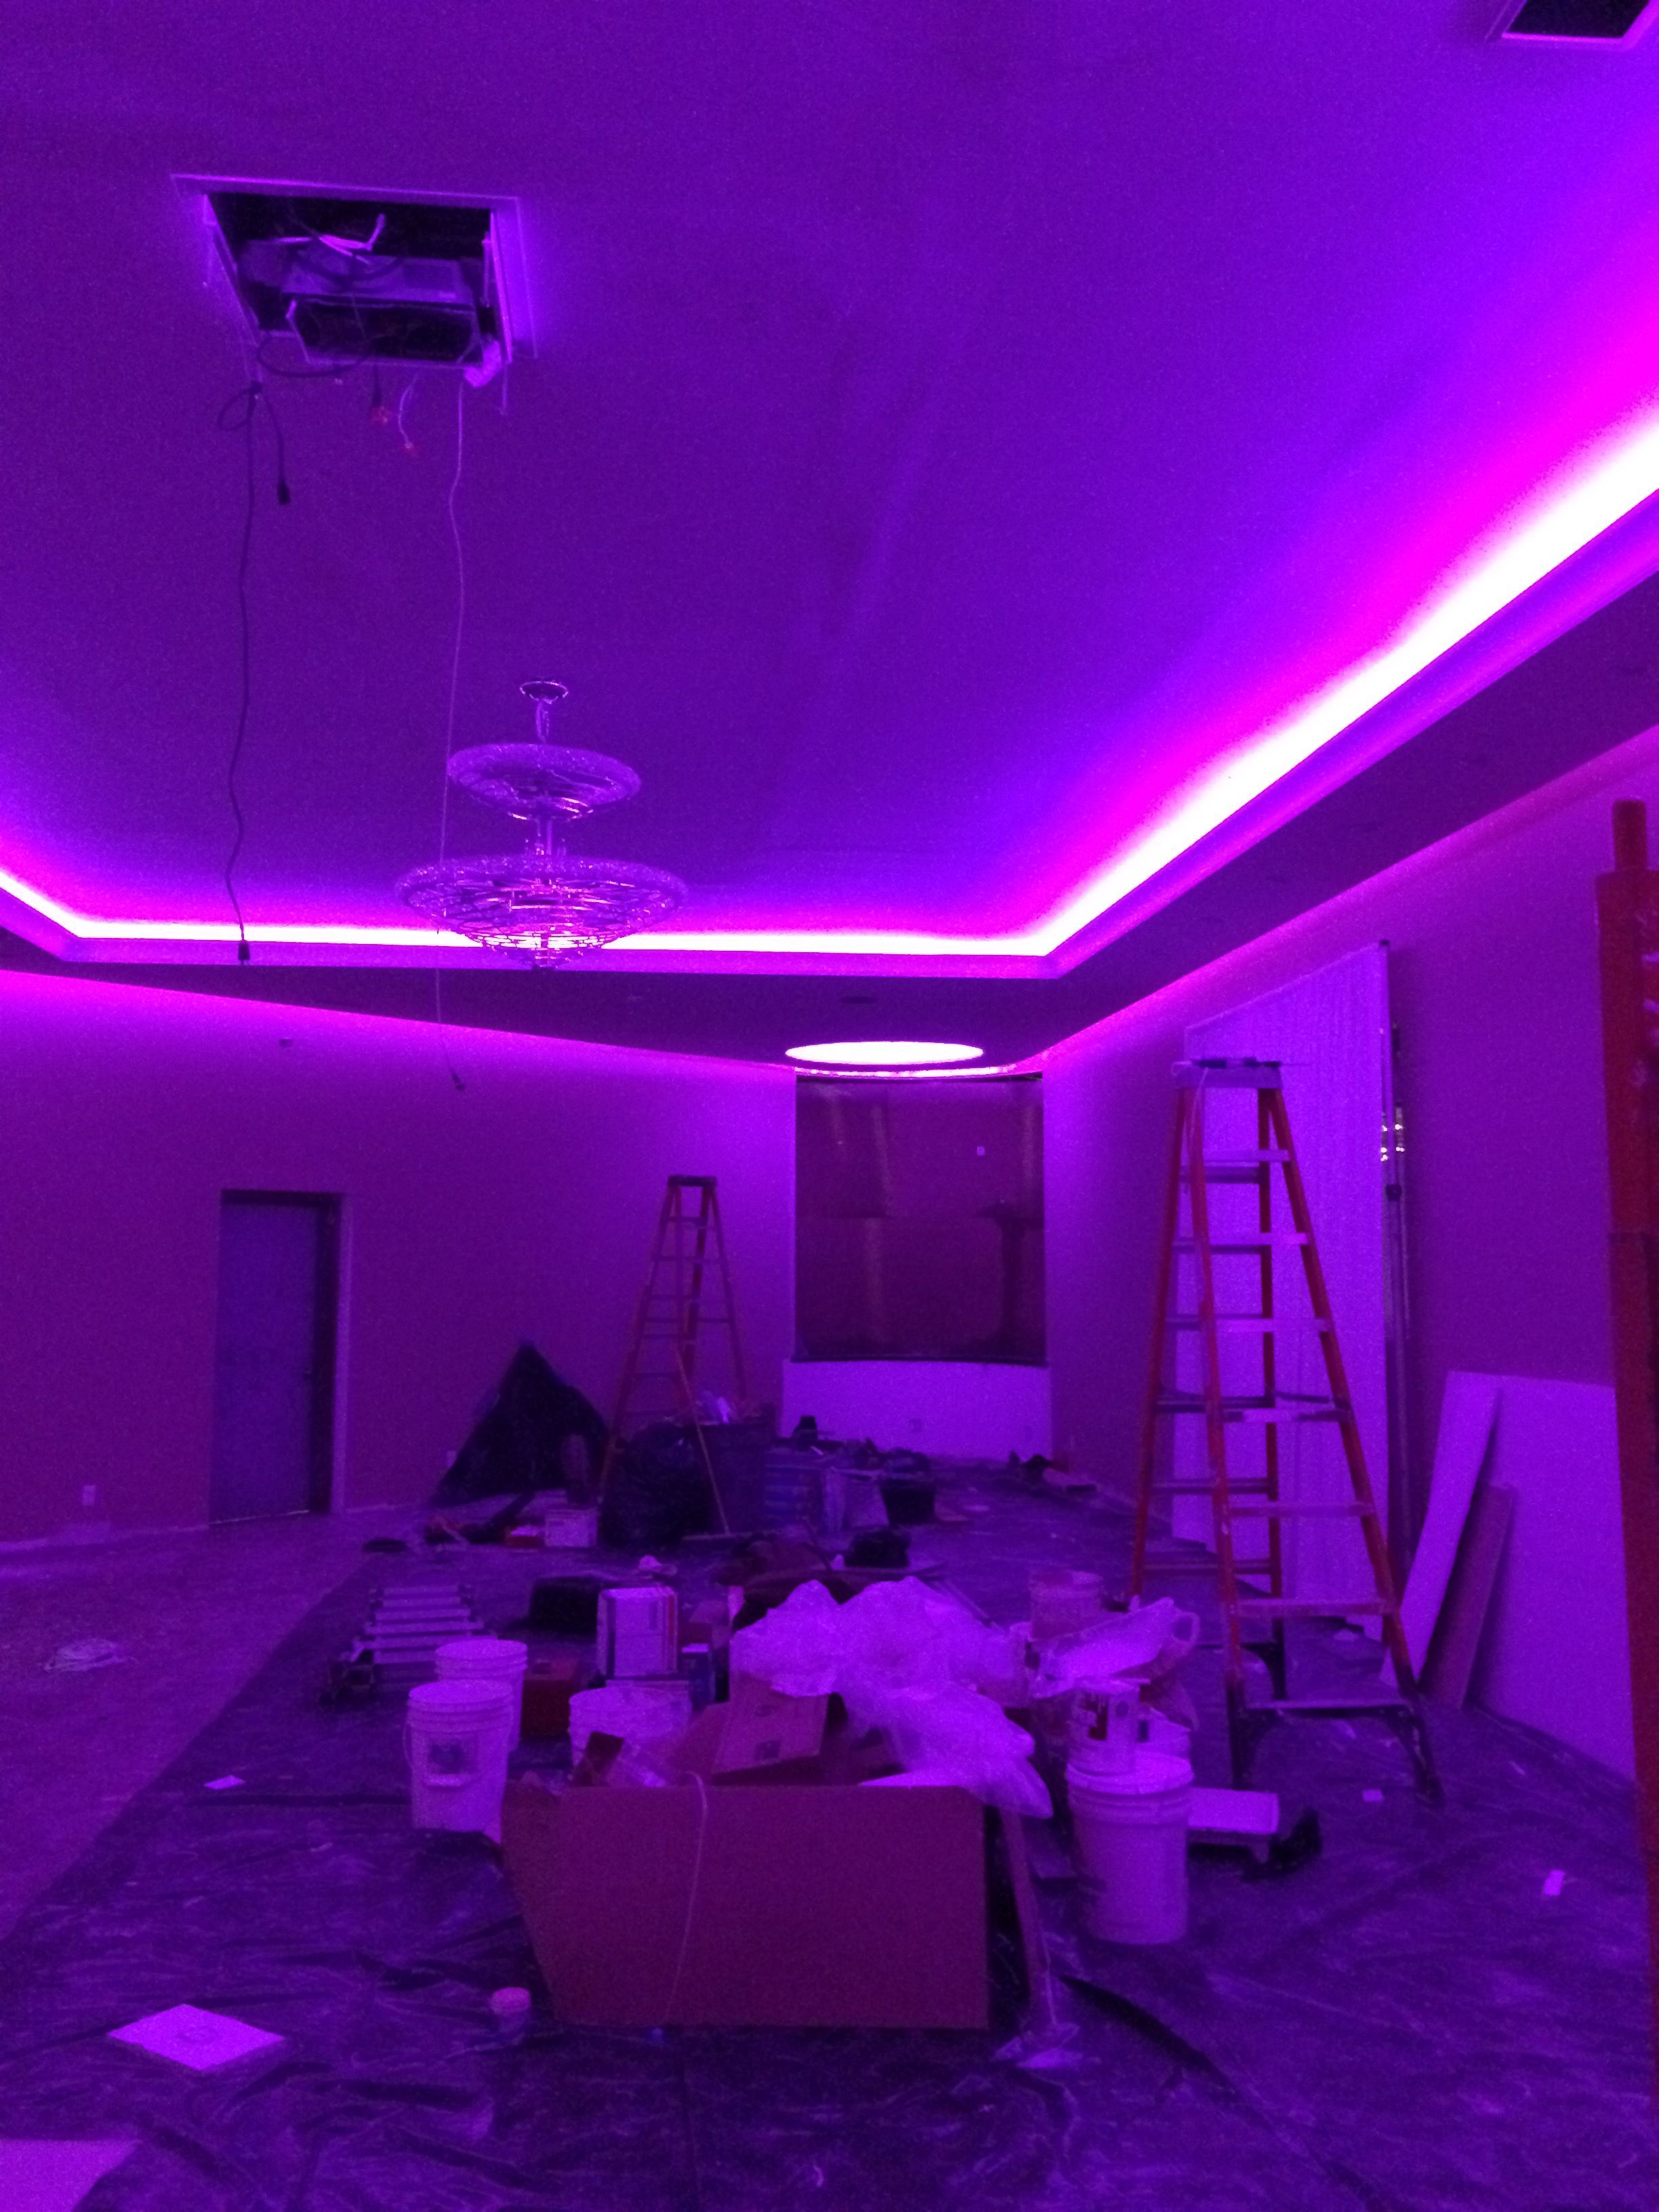 Led Tape In Soffet Millions And Millions Of Colors Led Ledlighting Colors Cater Teenager Schlafzimmer Dekorieren Einrichtungsideen Schlafzimmer Traumzimmer